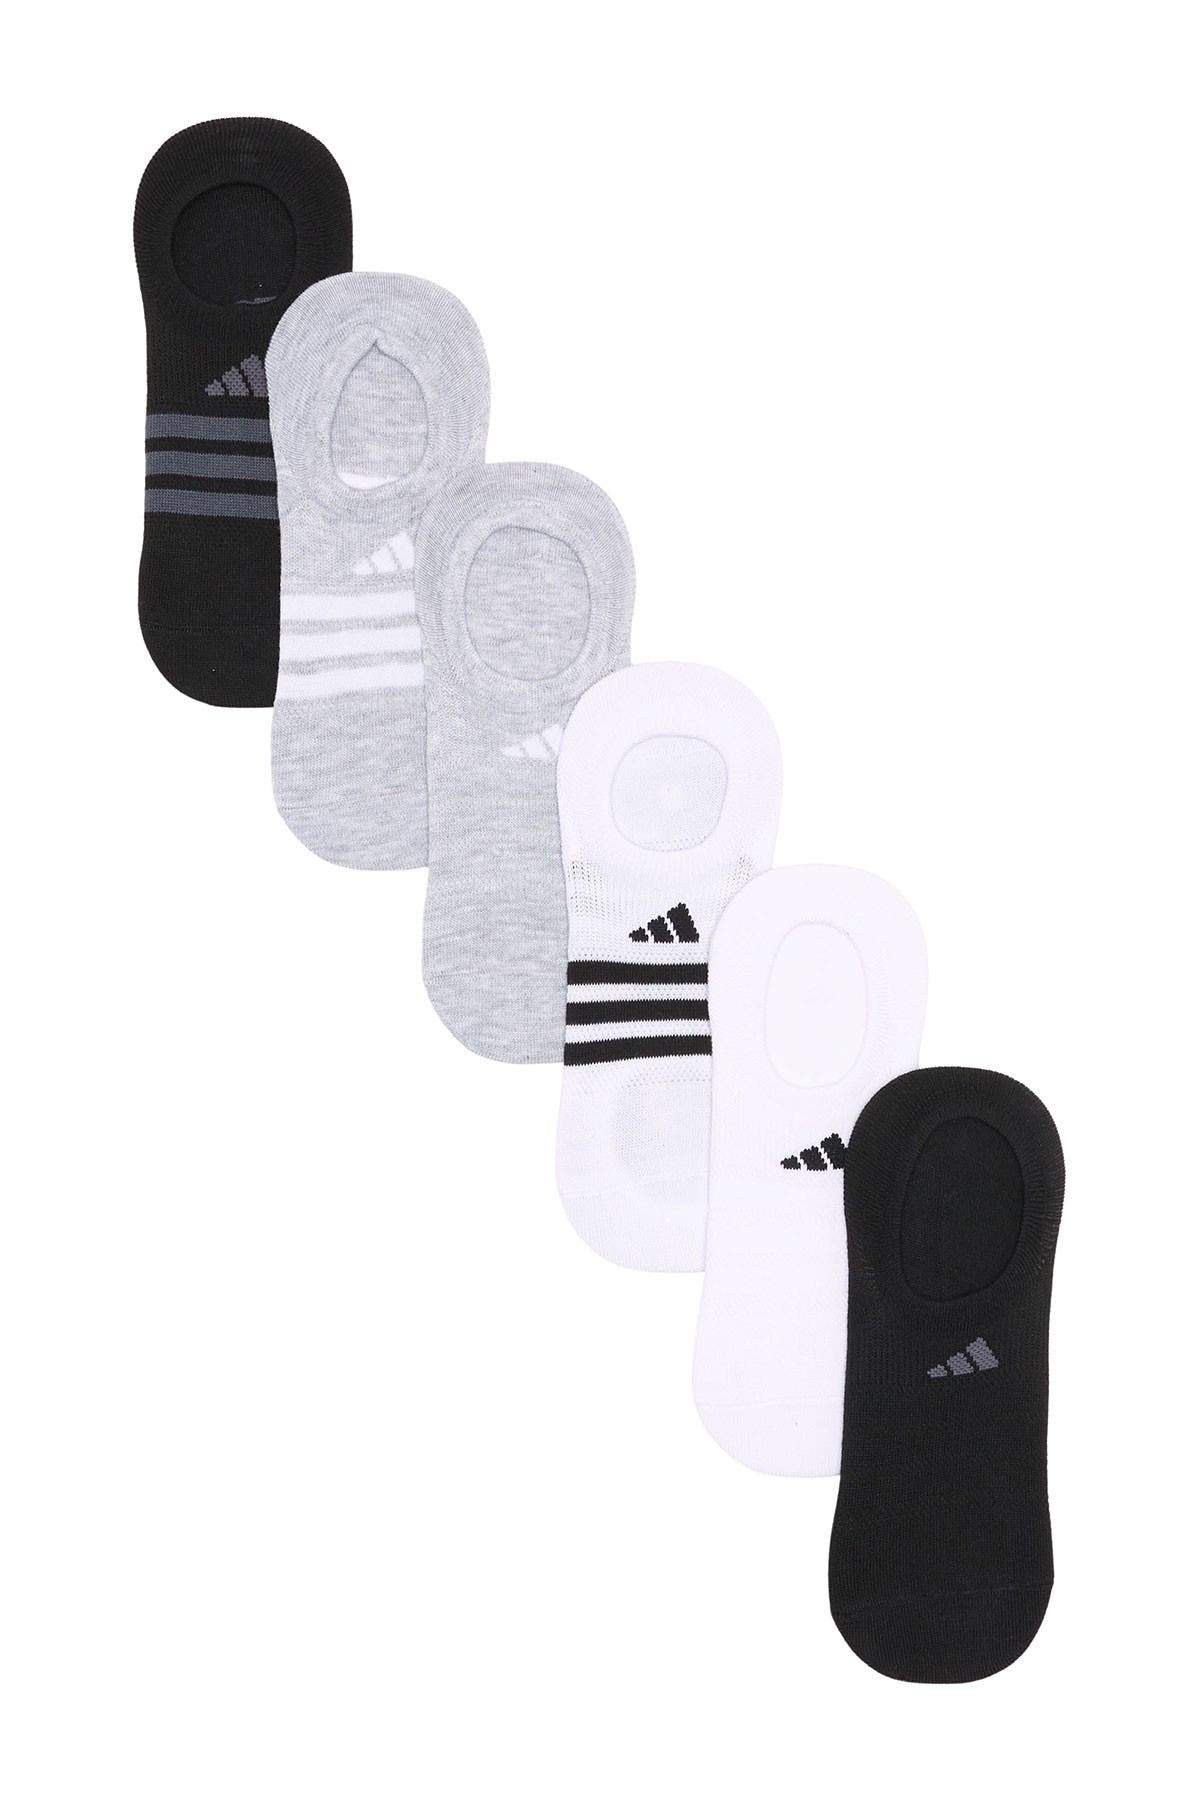 Image of adidas No Show Socks - Pack of 6